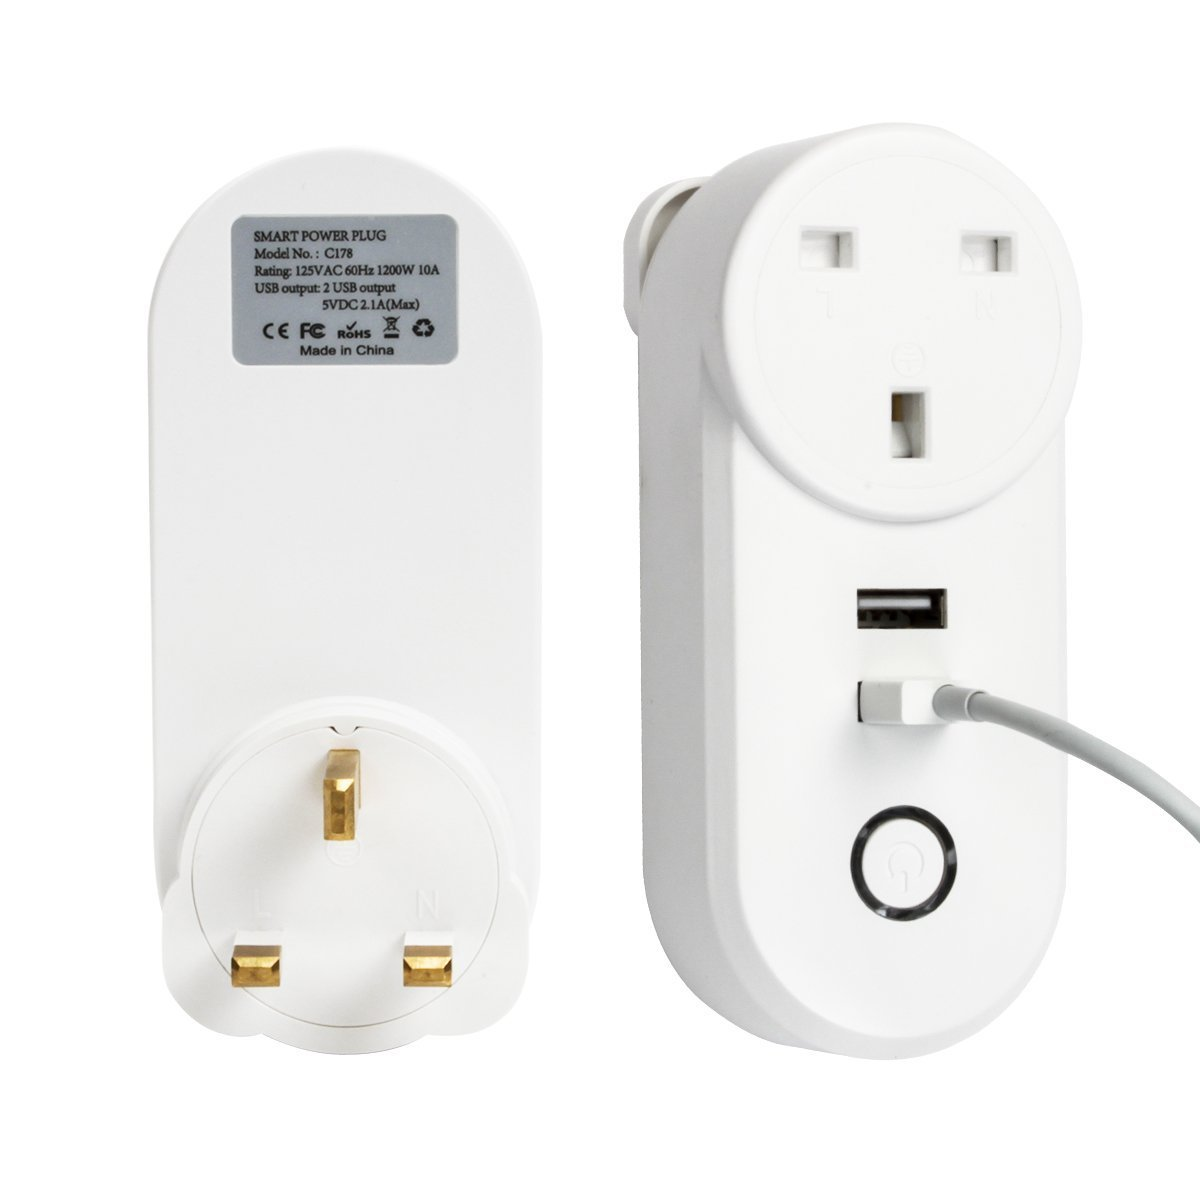 Wifi Smart Power Plug USB Wall Switch Socket Google Assitanc